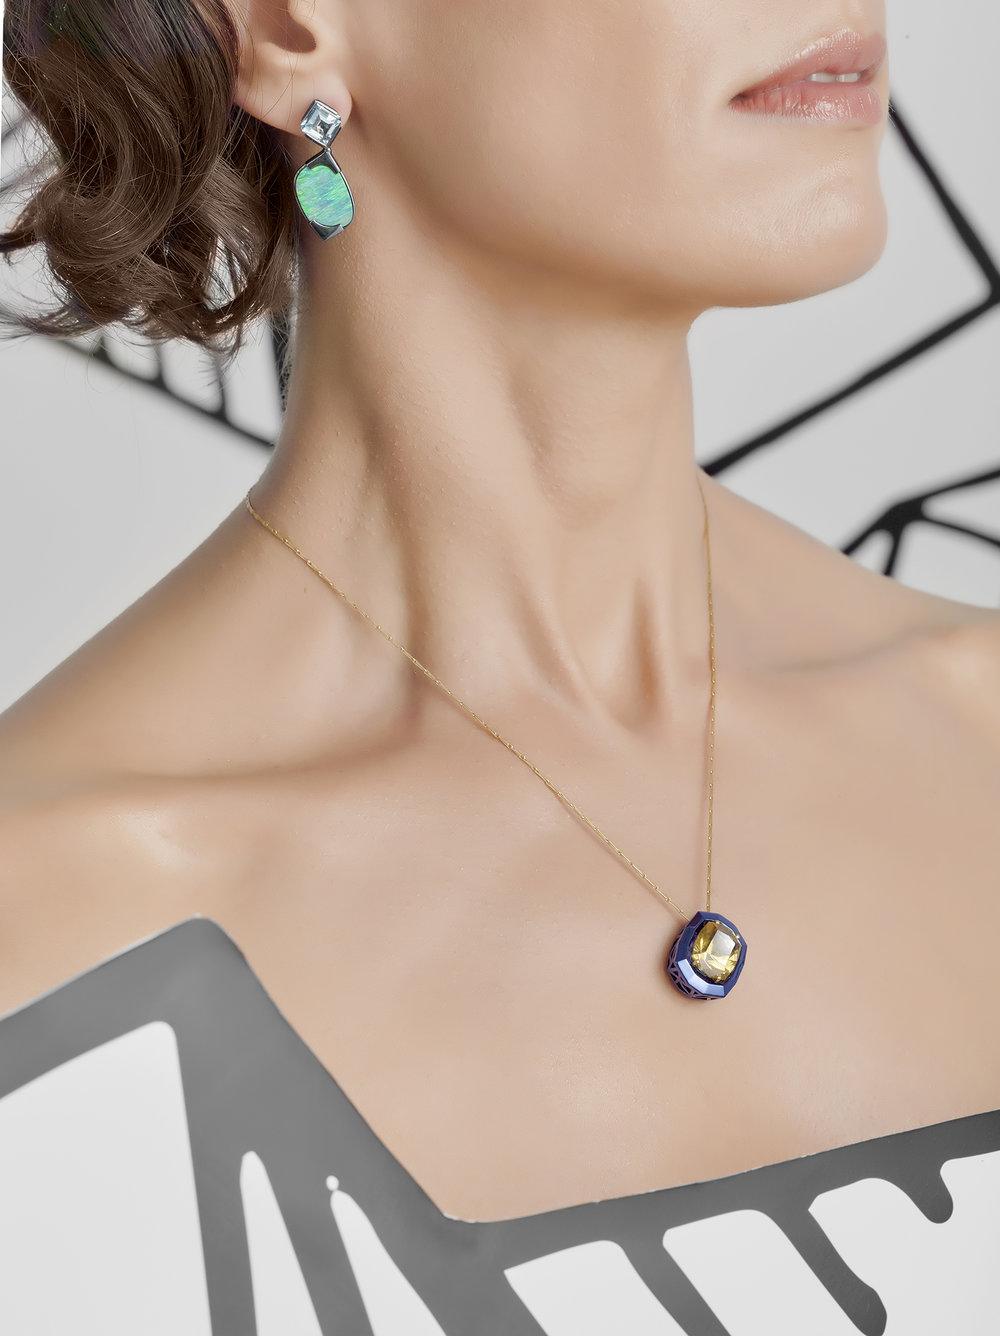 Chromanteq Opal Aquamarine and Peridot Earrings with Heliodor Necklace Edit 2.jpg